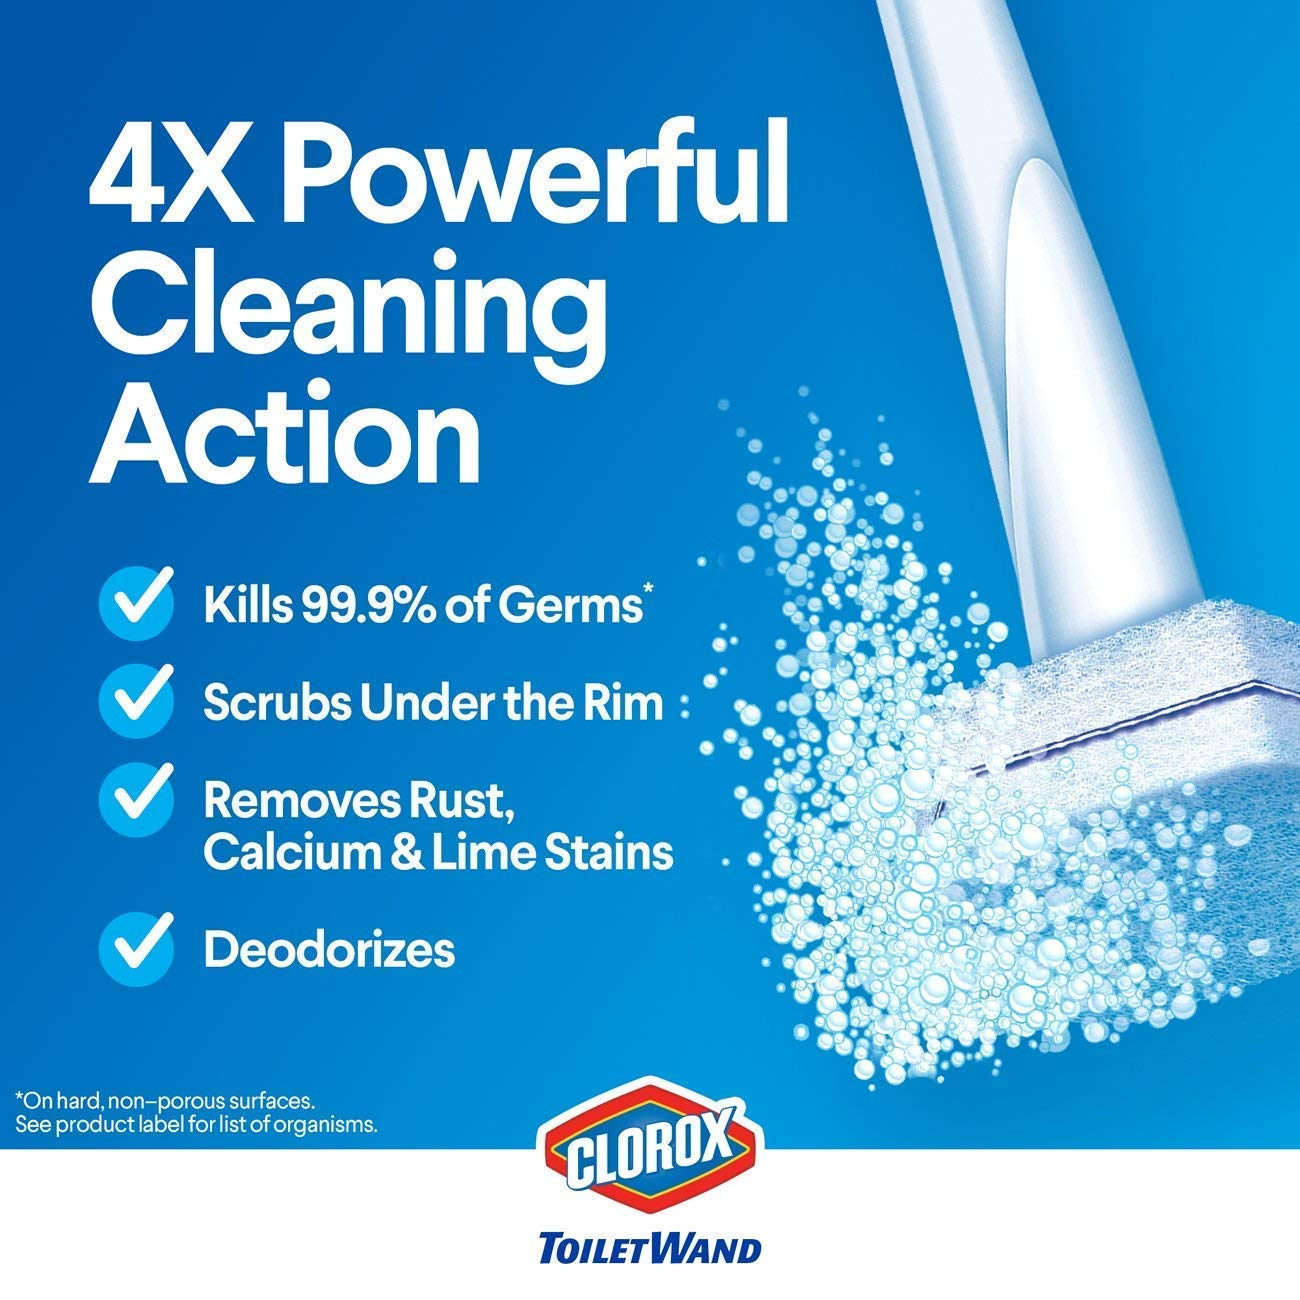 Clorox Toilet Wand Disposable Toilet Cleaning Rainforest Rush Refill, 30 Count Total (4 Pack(30 Count)) by Clorox Toilet Wand (Image #6)